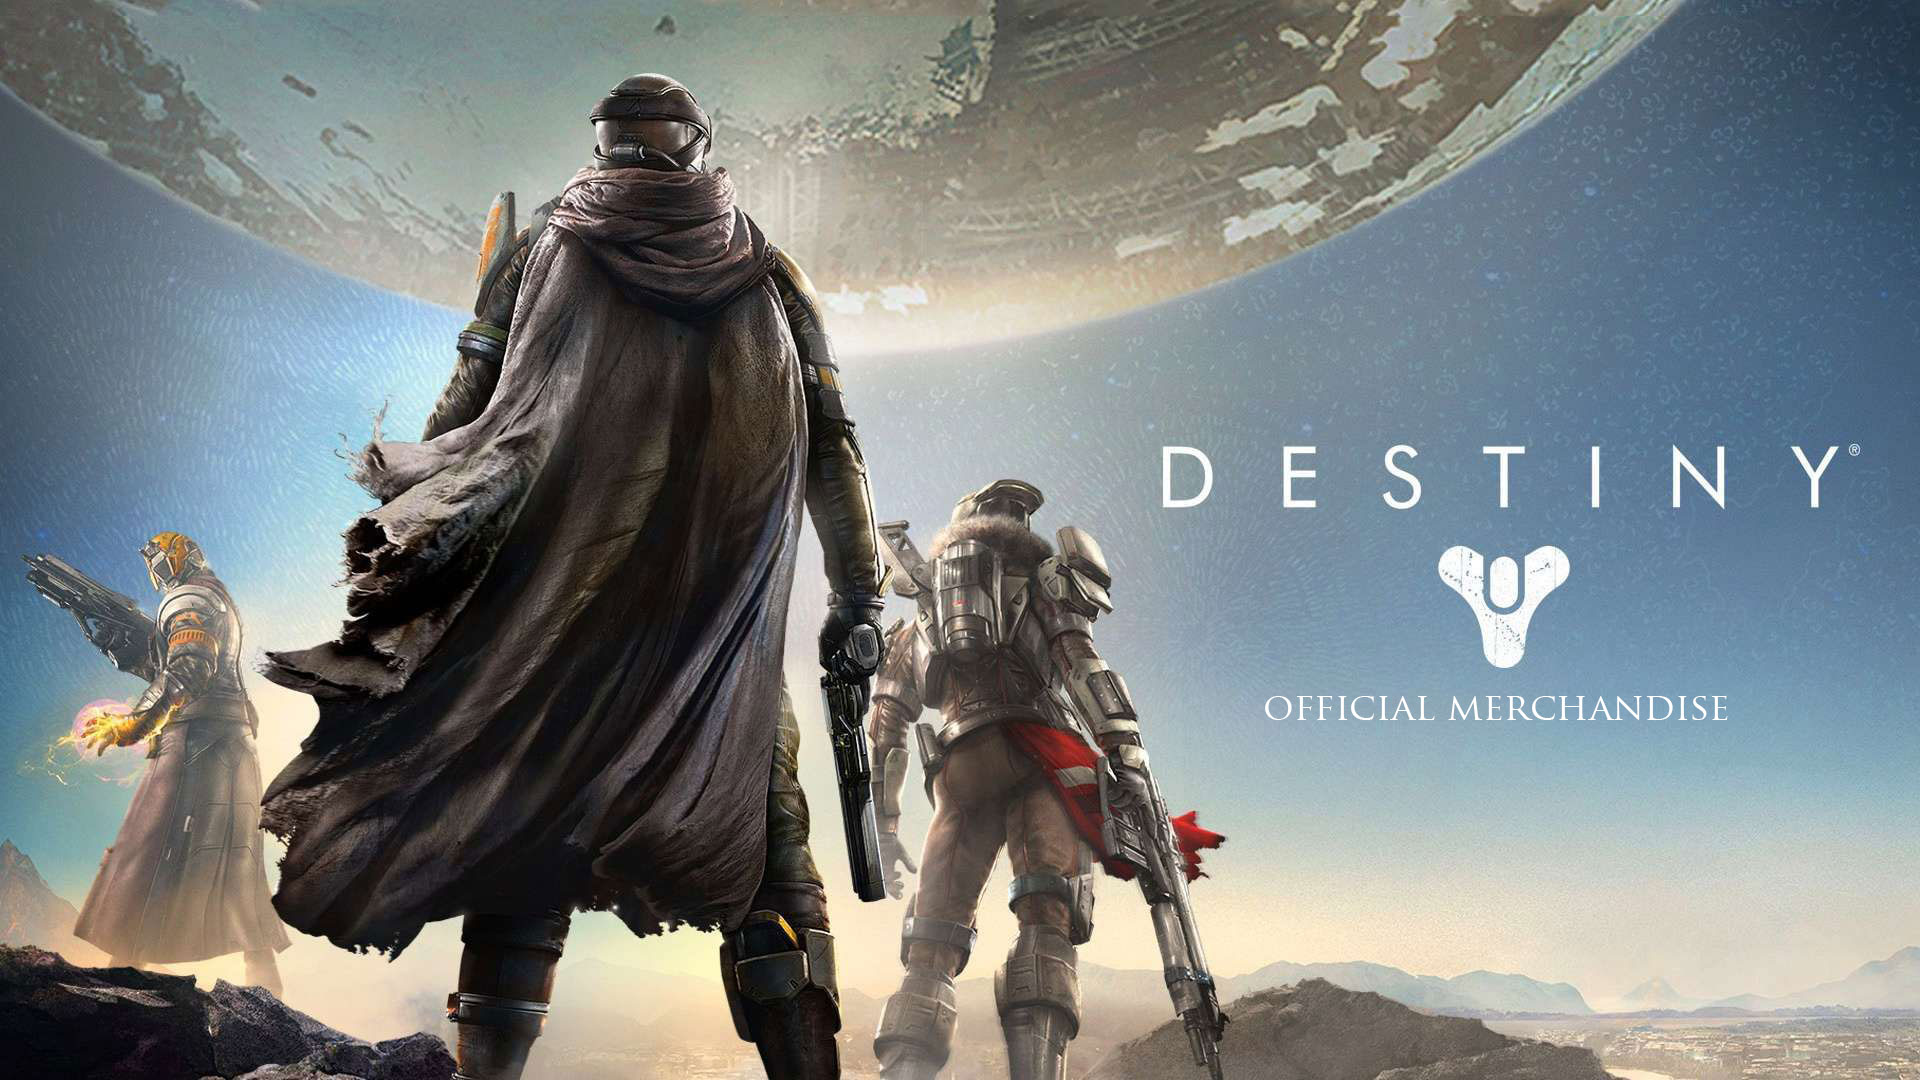 Destiny: The Liason Between First Person Shooter…And Everything Else